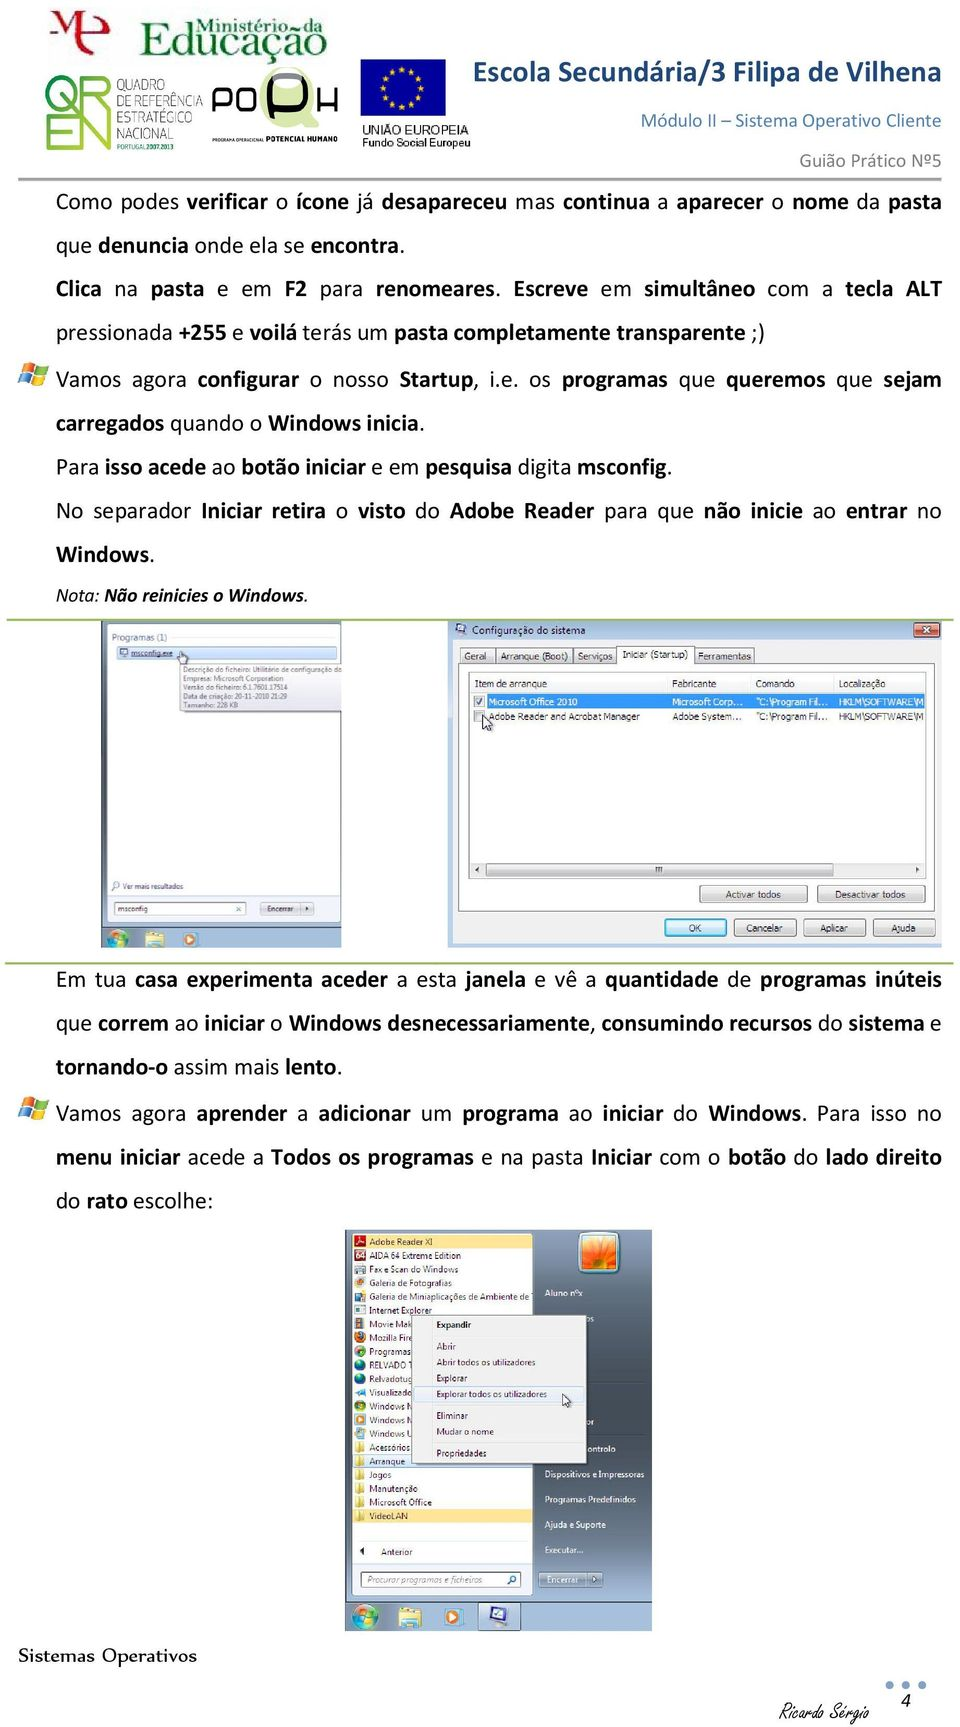 Para isso acede ao botão iniciar e em pesquisa digita msconfig. No separador Iniciar retira o visto do Adobe Reader para que não inicie ao entrar no Windows. Nota: Não reinicies o Windows.